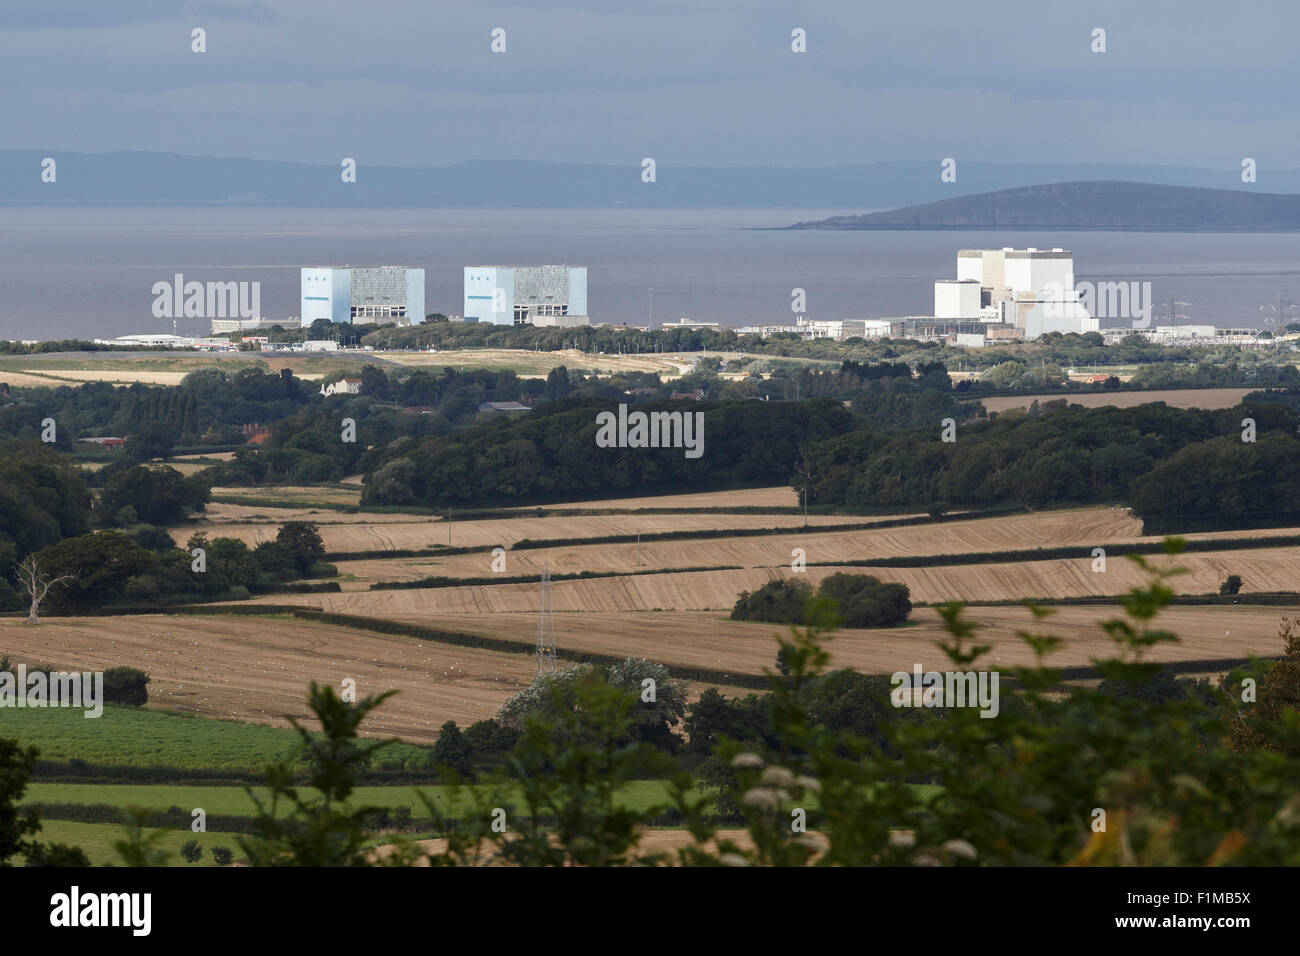 Hinkely Point nuclear power plant. A station to the left, B station to the right. Viewed from the Quantock Hills. Stock Photo